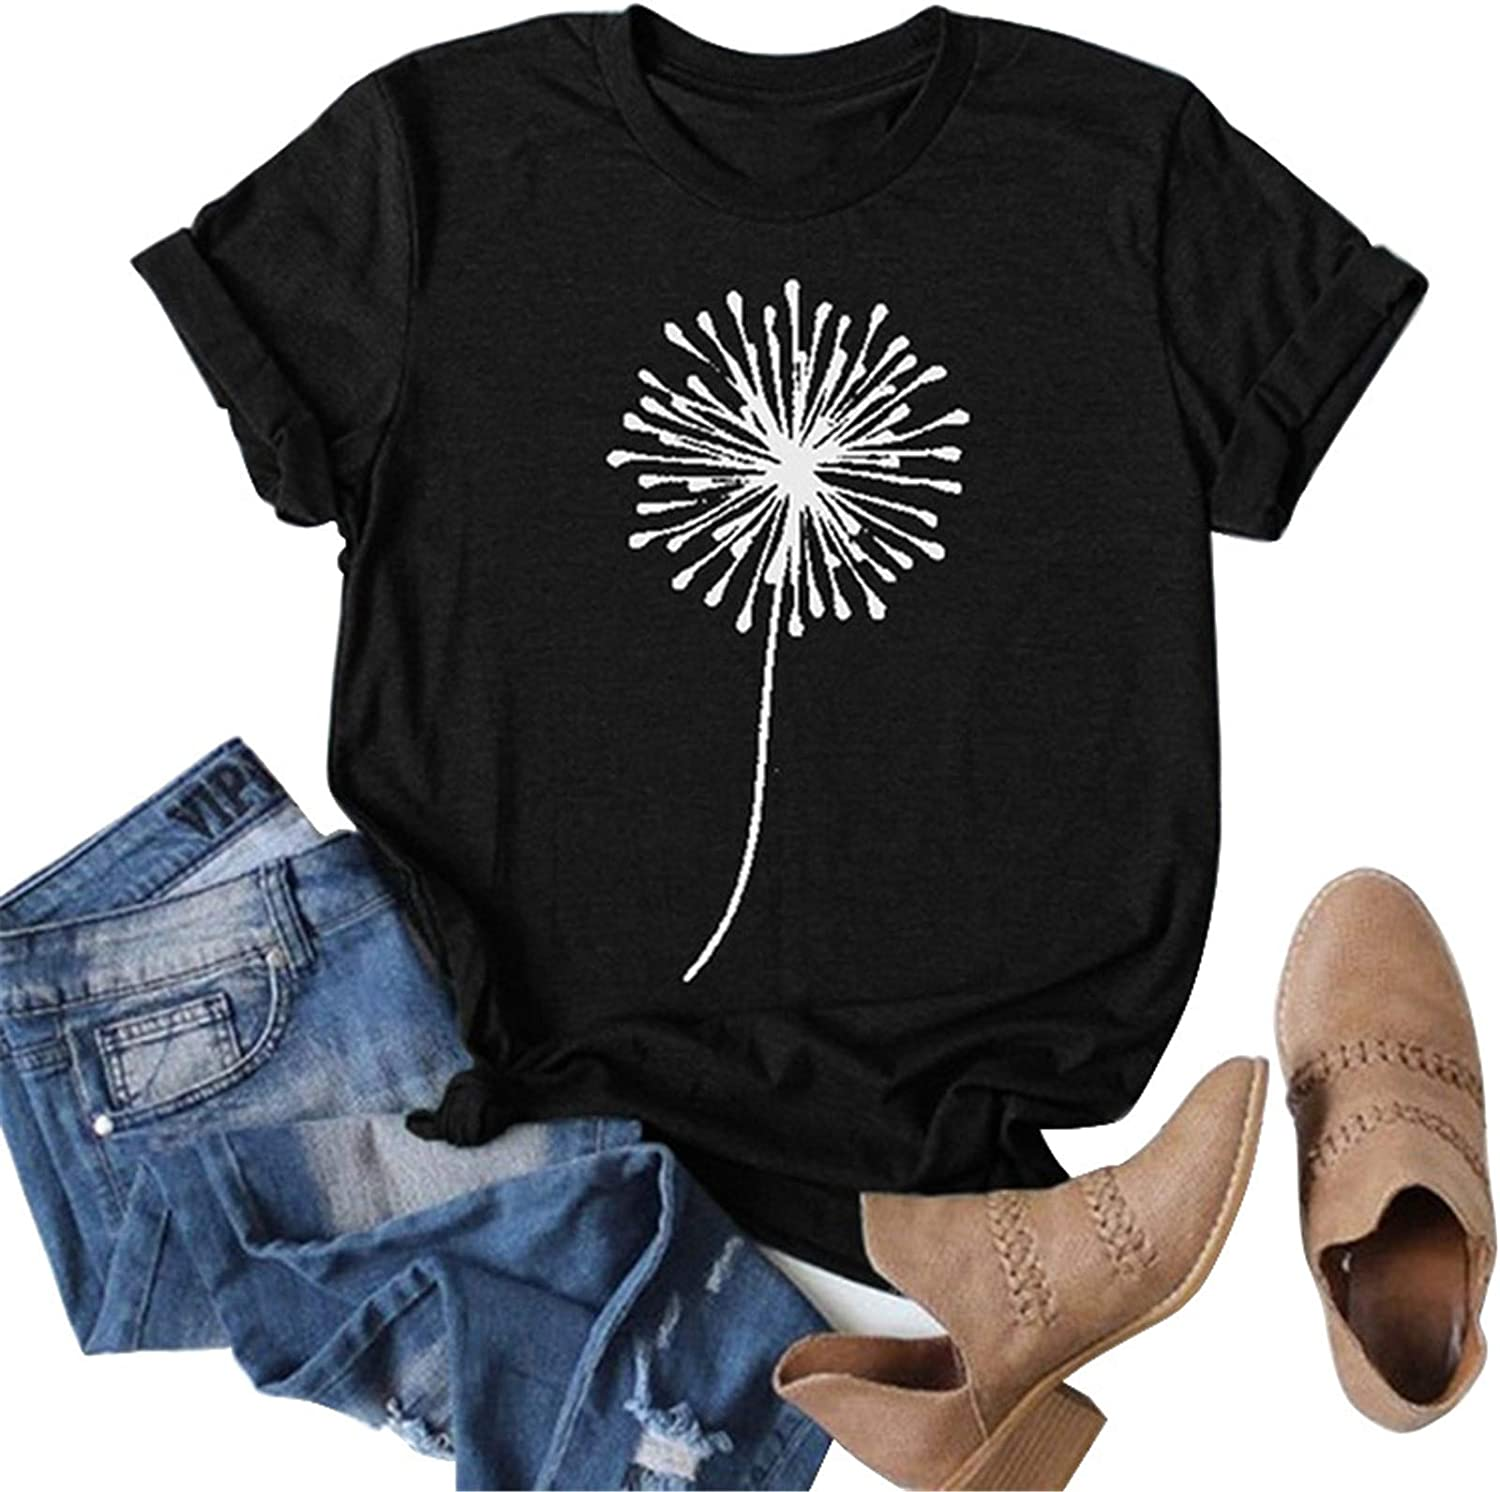 HAM Summer Tops for Women Casual Womens Sunflower T-Shirts Cute Graphic Tee Shirts Printed Funny Tee Shirts Tunic Top